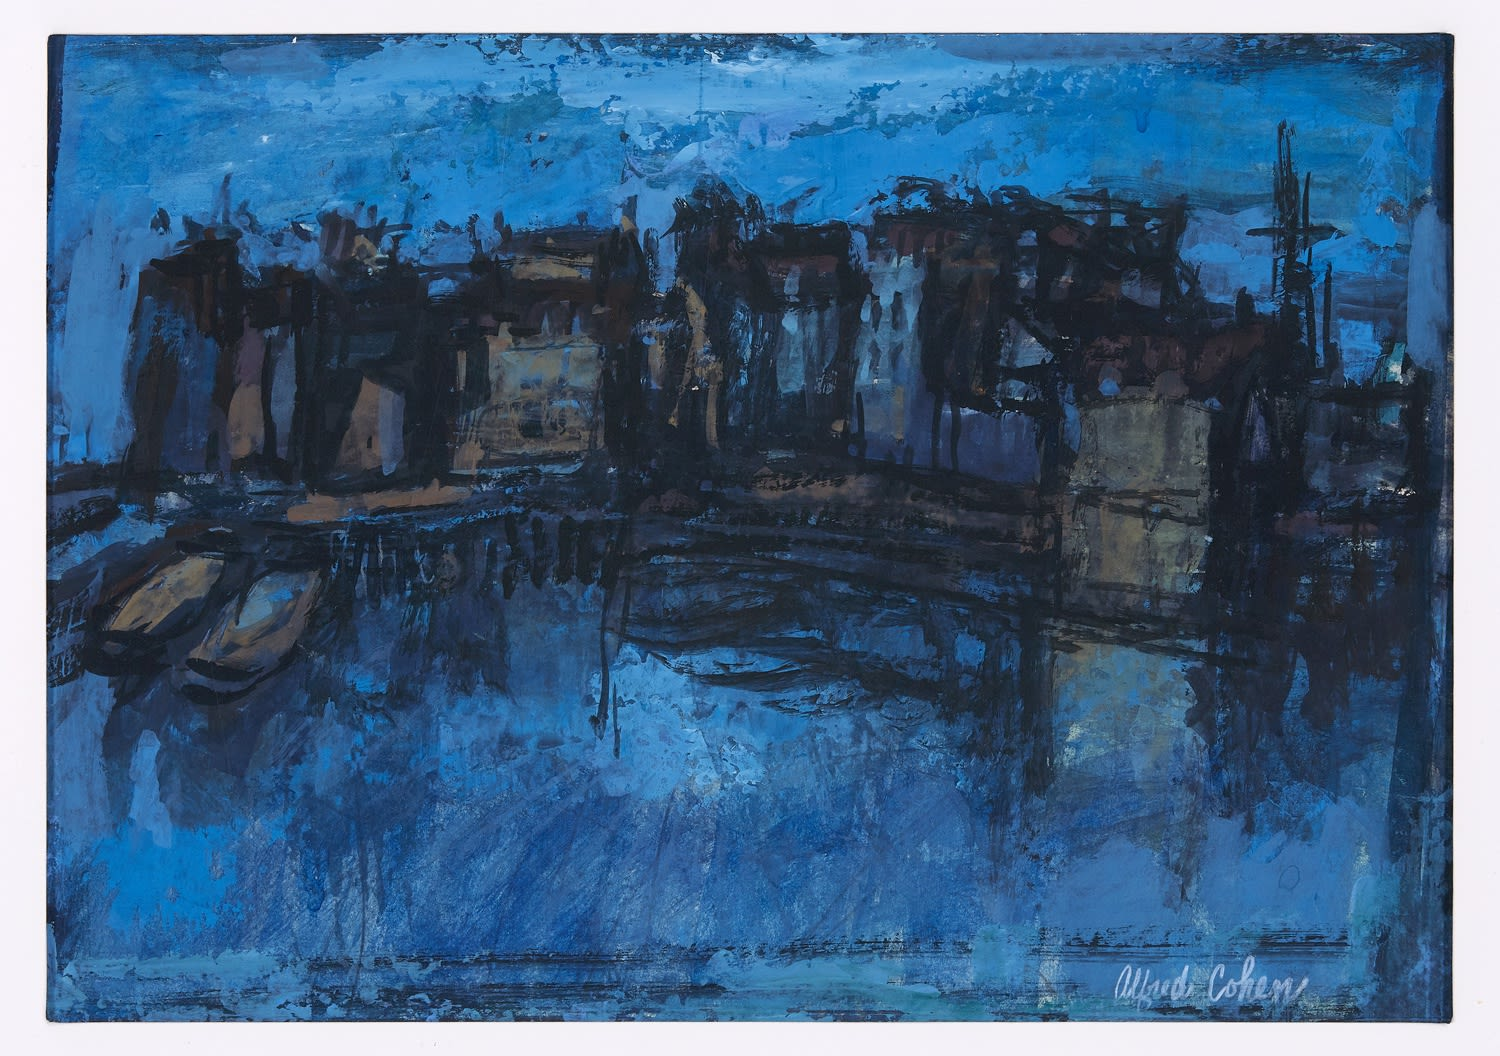 Alfred Cohen (1920-2001) River at Night 1963 Gouache and PVA 20.3 x 29.2 cm Private Collection © Estate of Alfred Cohen 2020